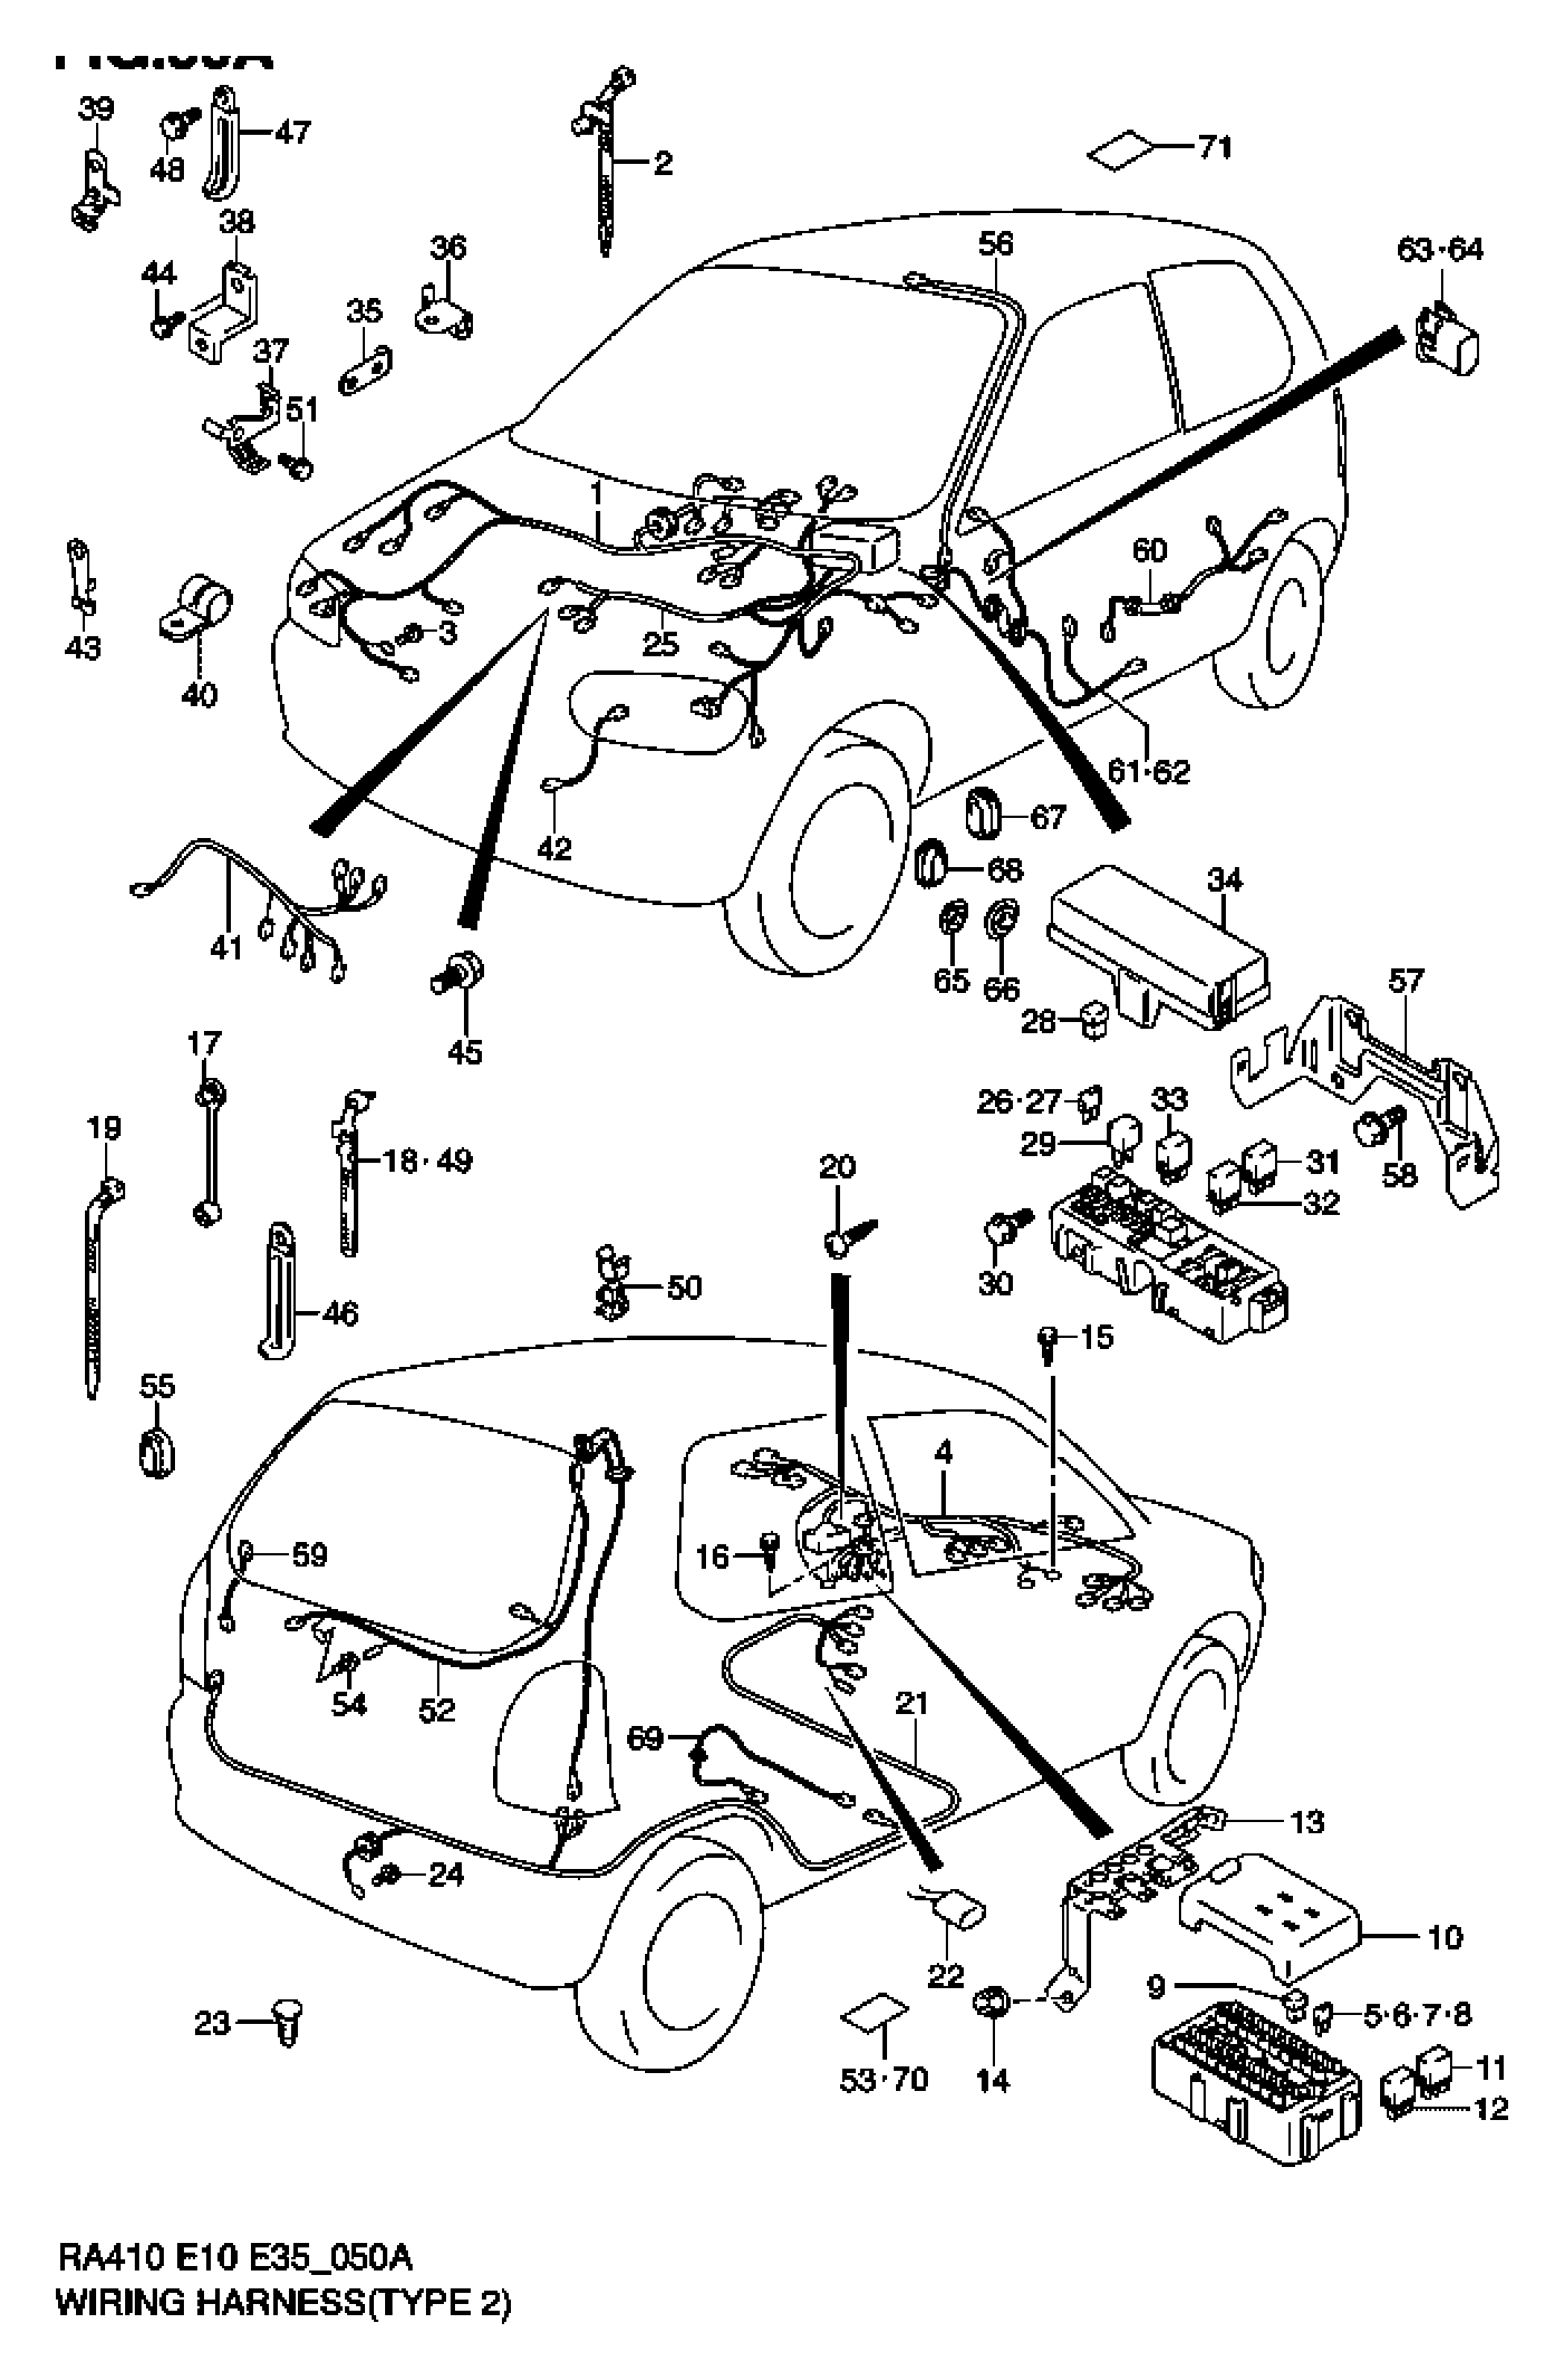 WIRING HARNESS (TYPE 2,3,4) CHEVROLET alto Alto RA410, -2 ... on chevy 4.3 harmonic balancer, chevy 350 tbi wiring-diagram, chevy 4.3 engine, chevy 7 4 vortec engine, chevy 4 3 tbi diagram, chevy 4.3 dipstick tube, chevy 4.3 carburetor, chevy throttle body wiring 6 wire, chevy 4.3 distributor cap, chevy 4.3 exhaust, chevy 4.3 knock sensor, chevy 4.3 oil pump, chevy 4.3 fuel pressure regulator, mercruiser 4.3 wiring harness, chevy 4.3 intake manifold,